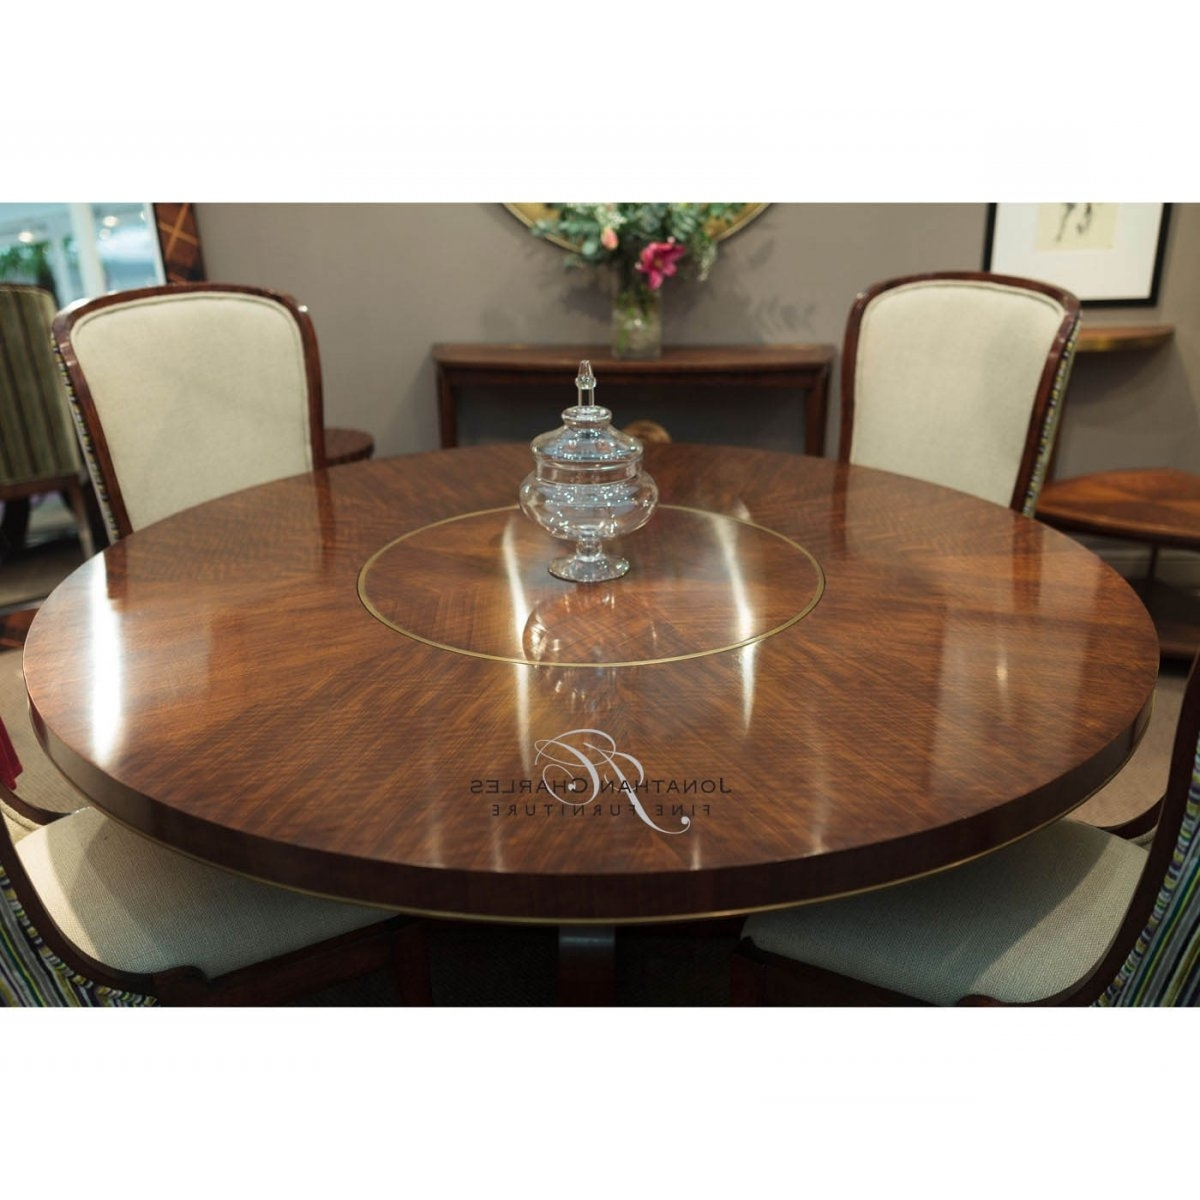 8 Seater Dining Tables Within Popular Square Dining Table 8 Seater Glass Dining Room Table And Chairs (View 17 of 25)